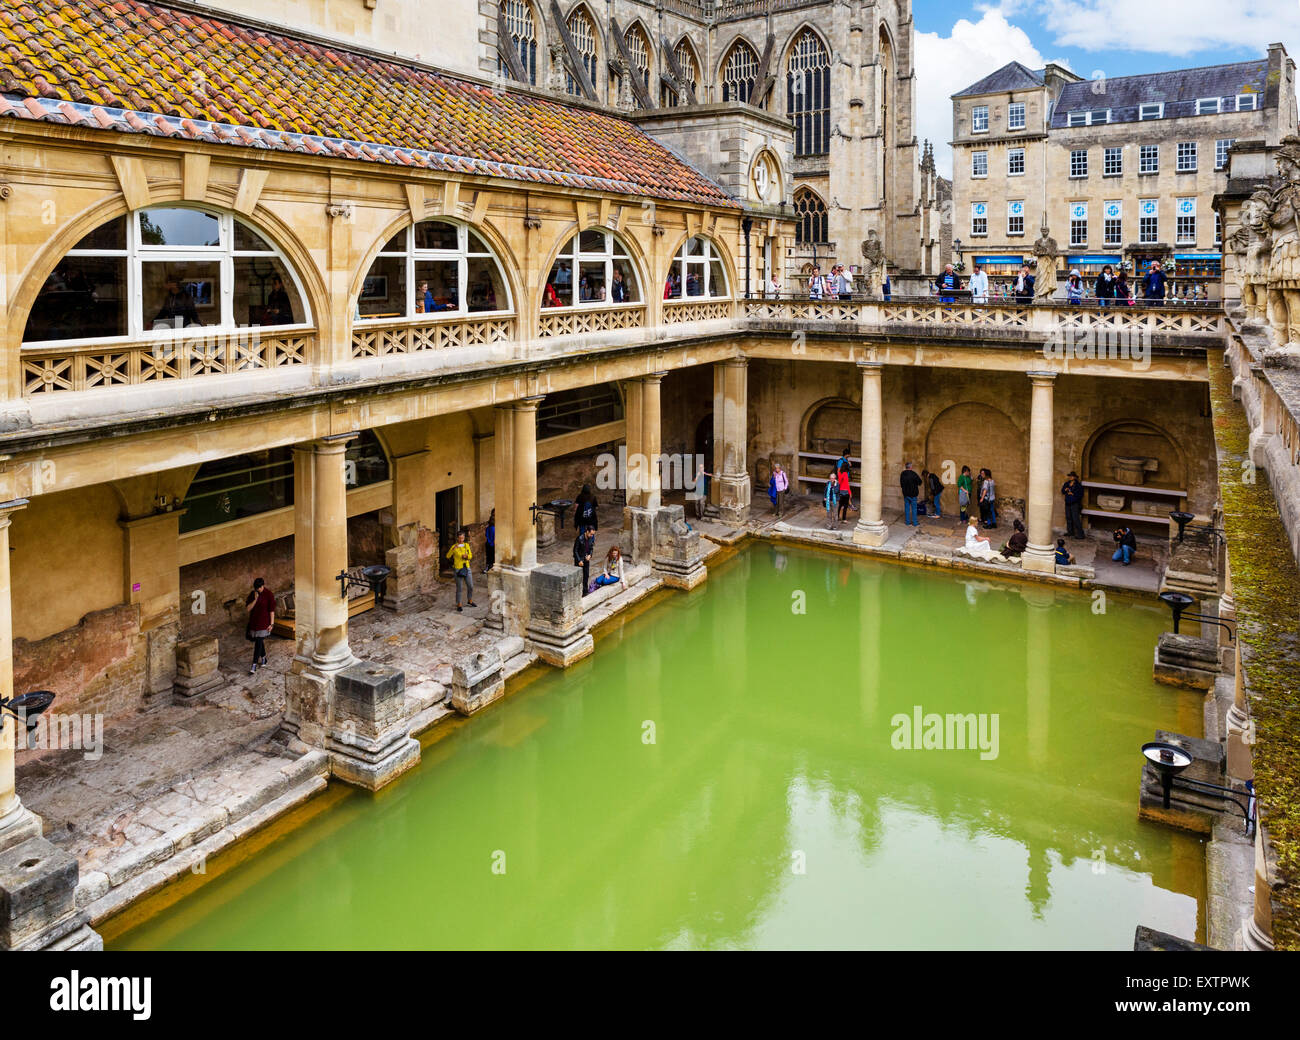 free dating sites bath A gay bathhouse, also known as a gay a gay bath is mainly used for having sexual activity rather than only and is then free to wander throughout the public.